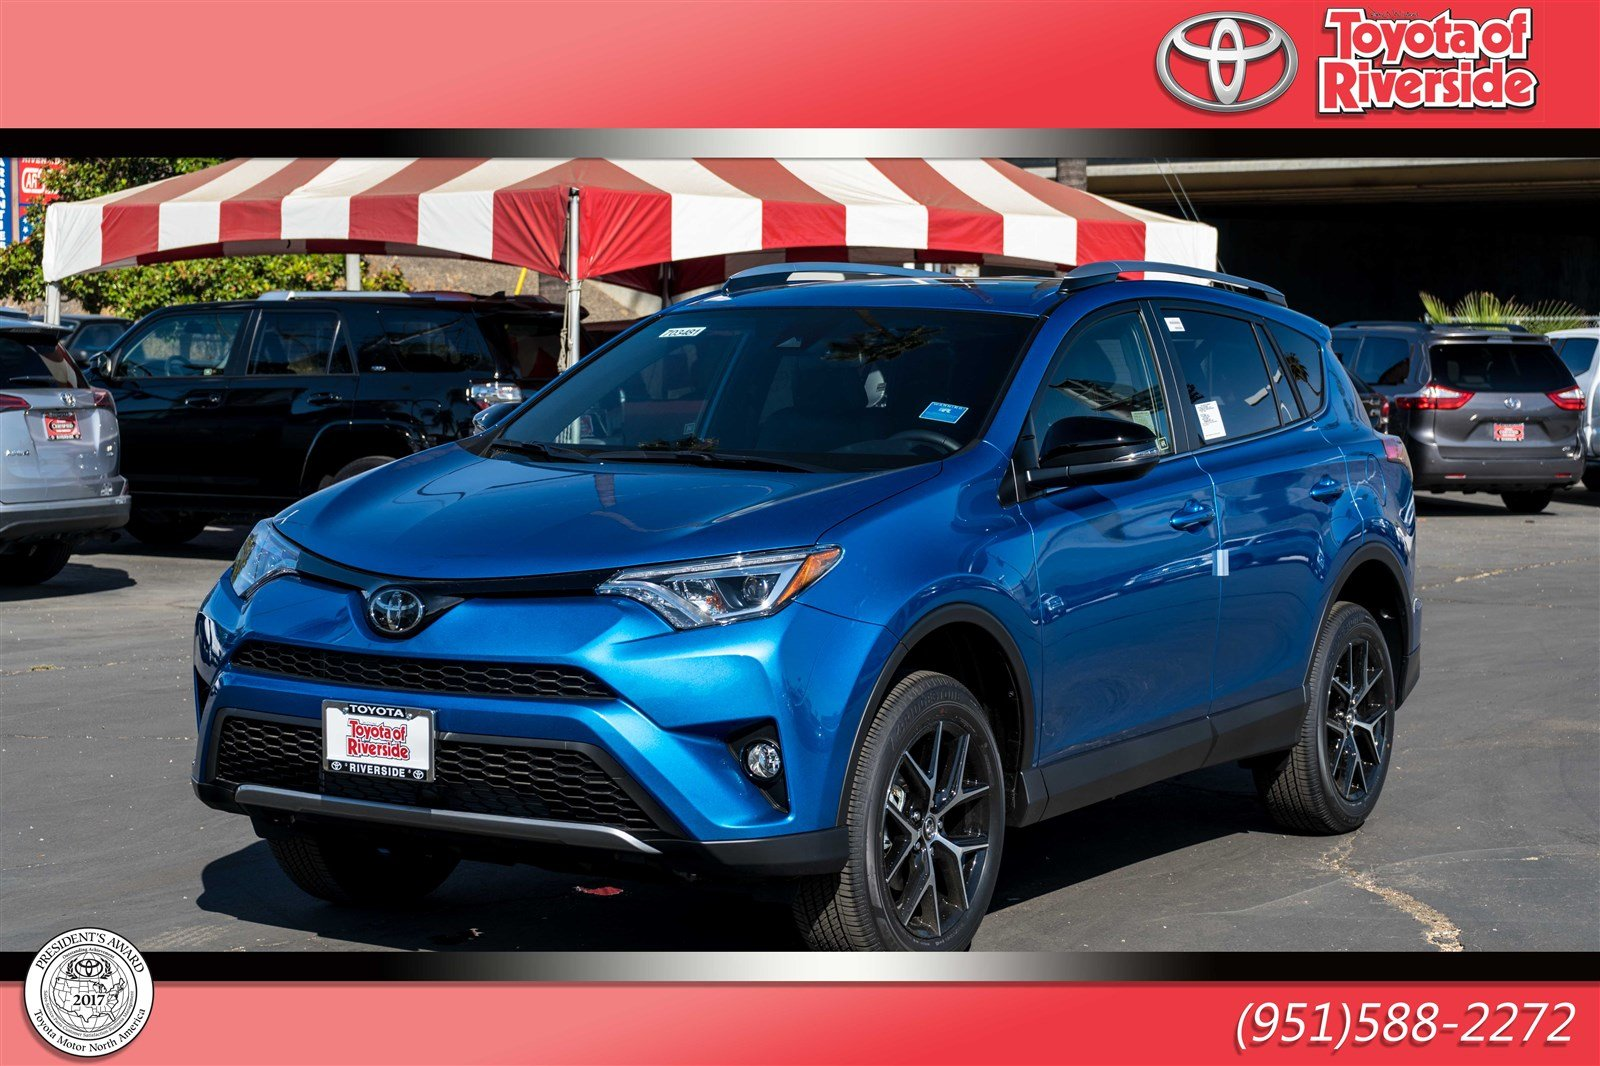 Toyota RAV4 Service Manual: Roof headlining